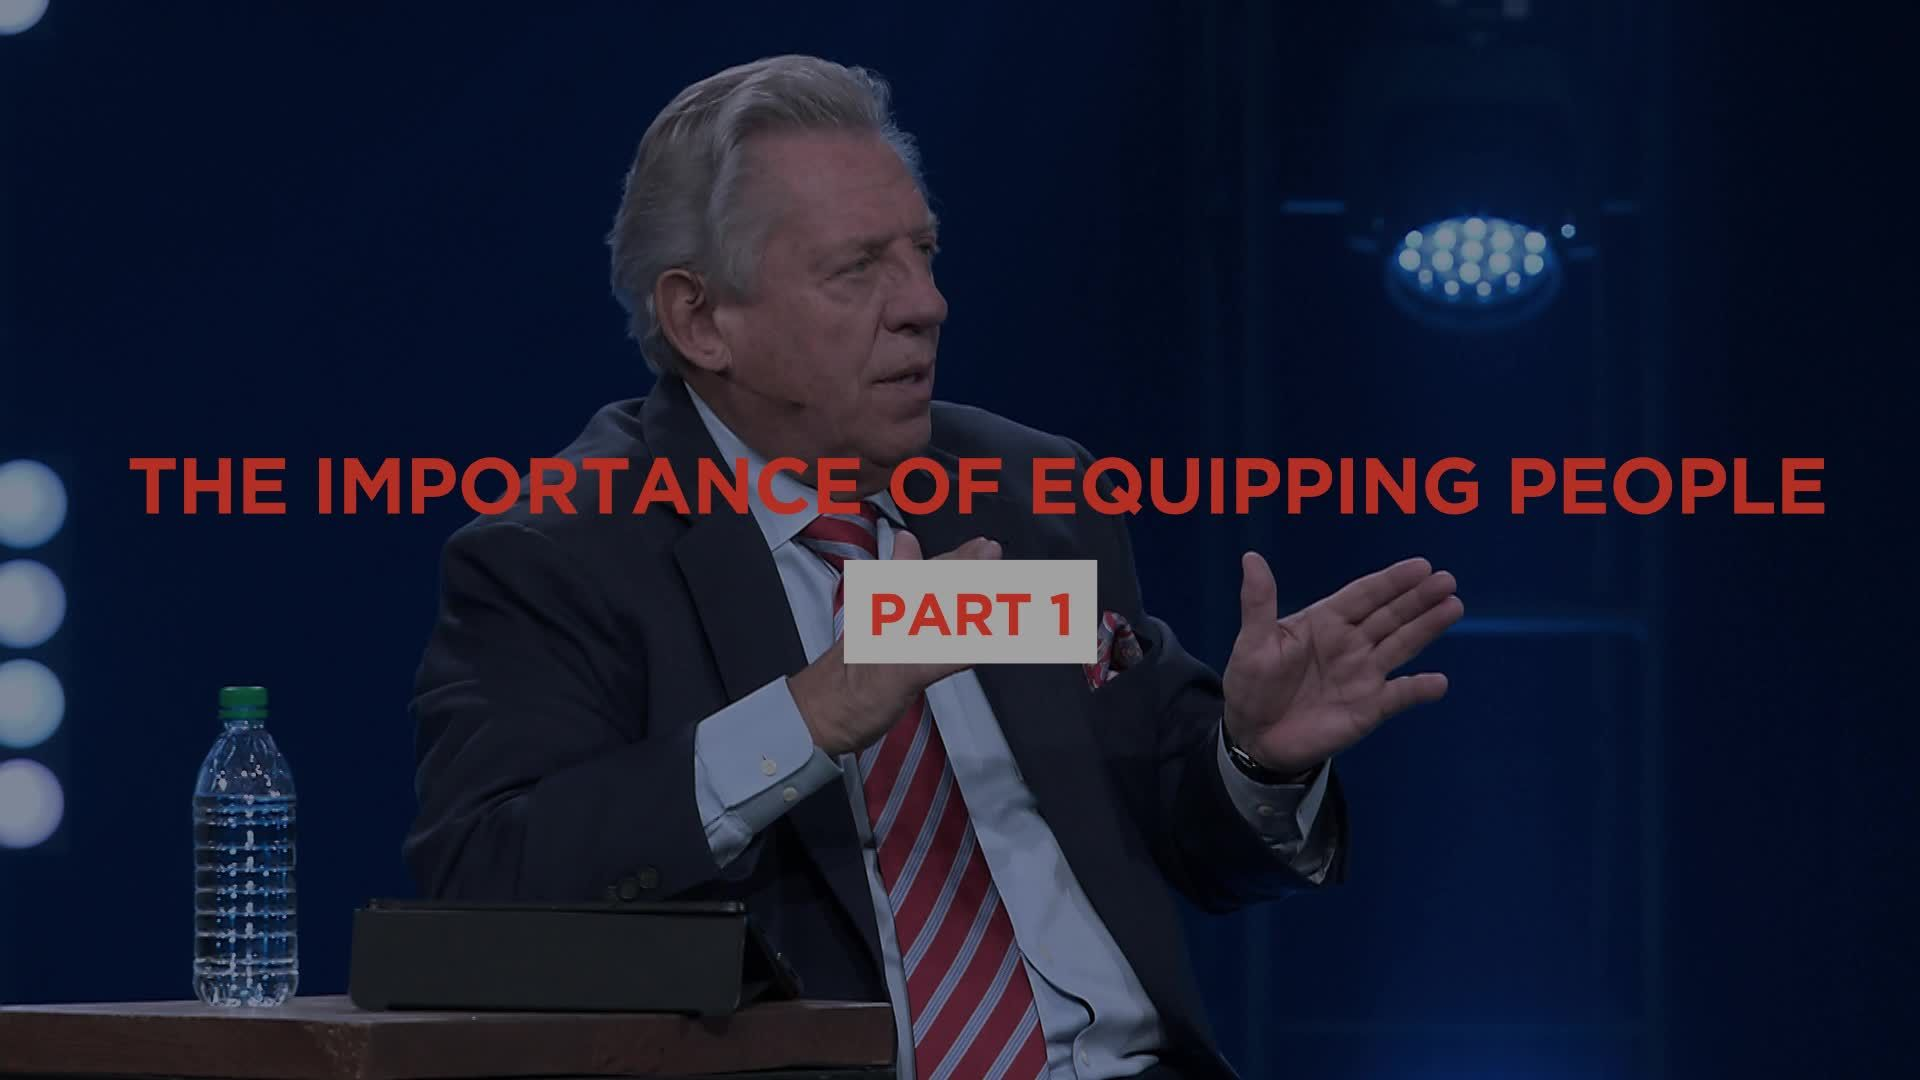 The Importance of Equipping People - Part 1